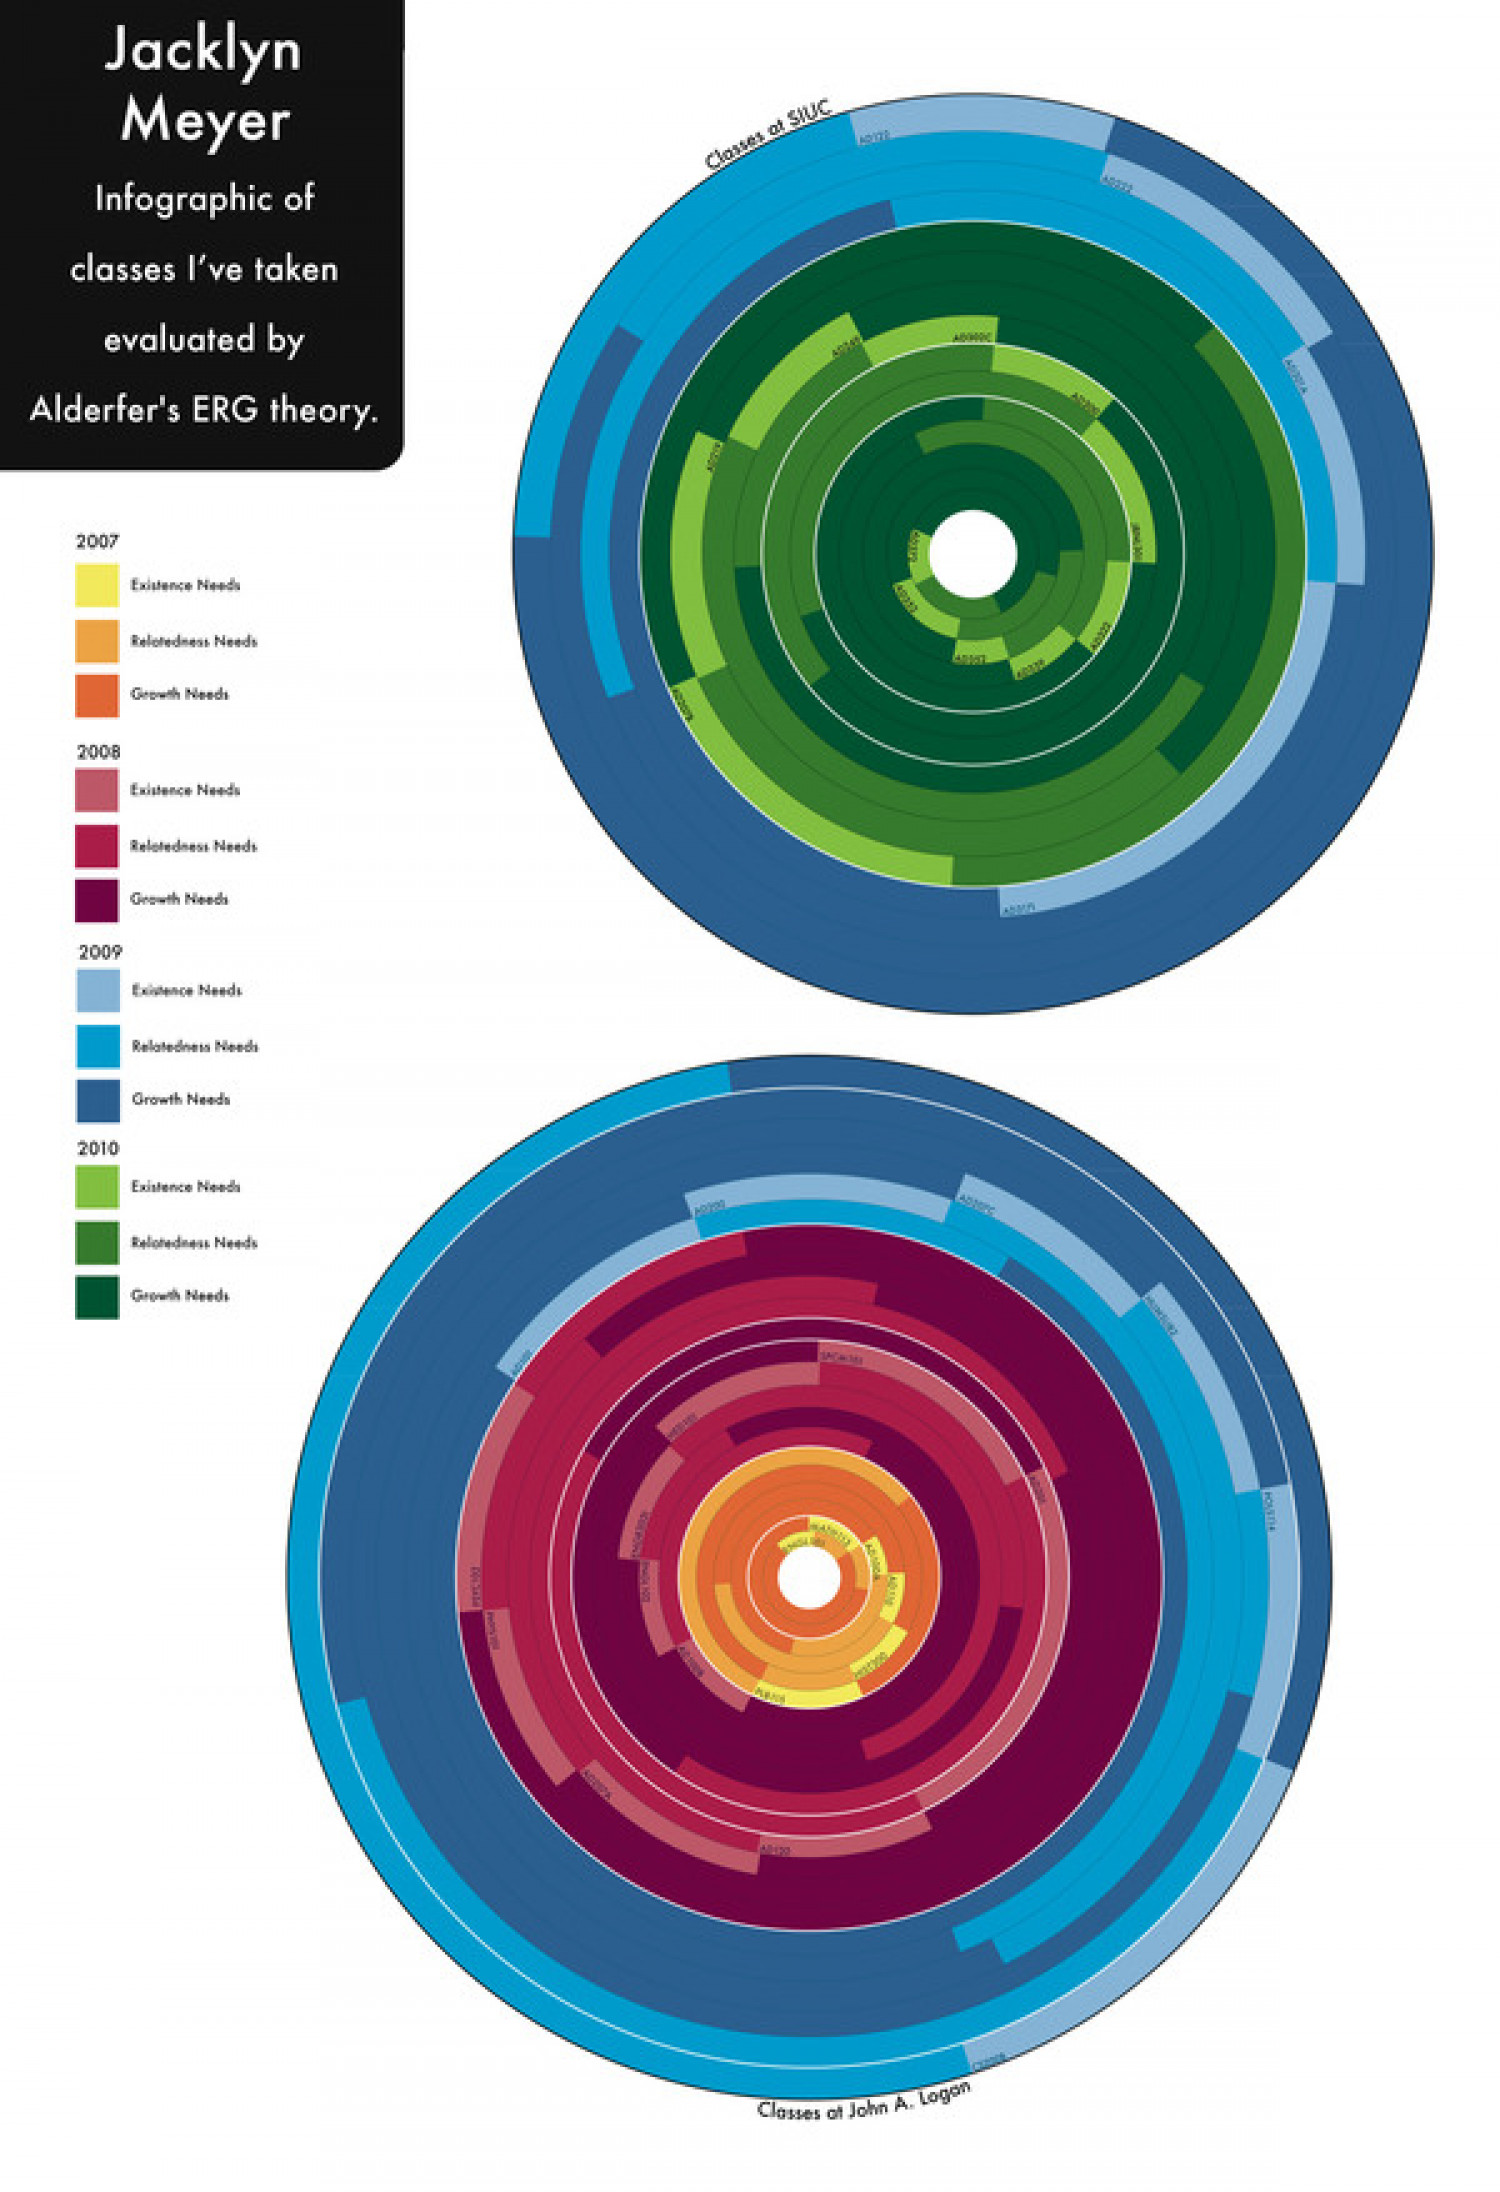 Alderfer's ERG theory Infographic